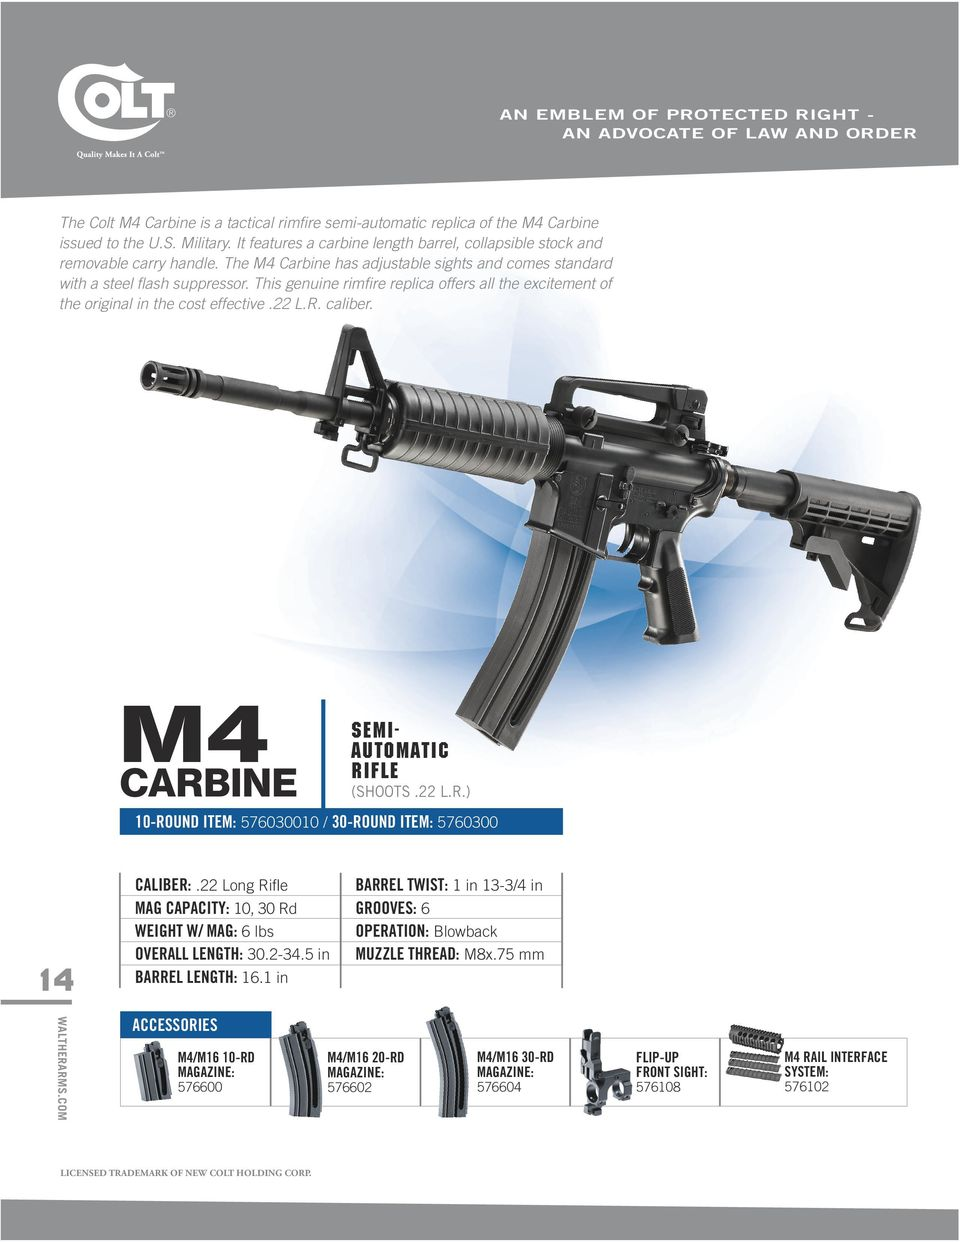 Legendary For A Reason 2015 Tactical Rimfire Catalog Pdf Tippmann 98 Custom Model E Bolt Manual This Genuine Replica Offers All The Excitement Of Original In Cost Effective